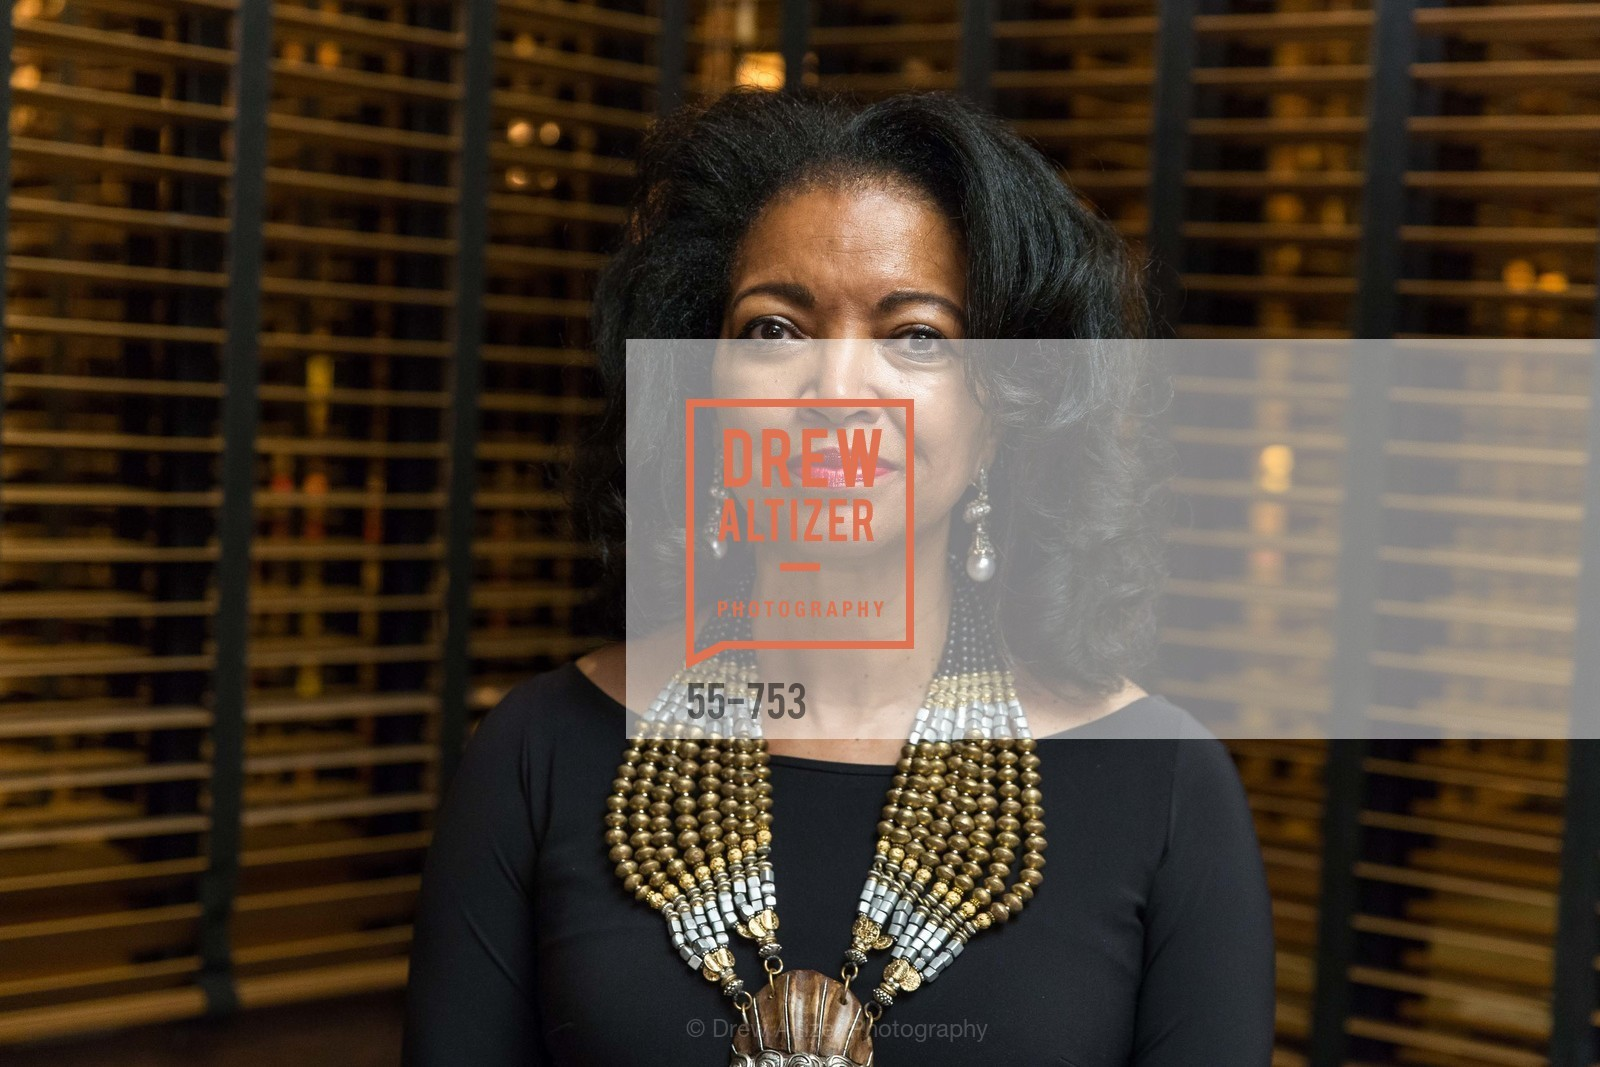 Denise Bradley Tyson, INSPIRED LUXE Launch Party Hosted by Denise Bradley Tyson, US, May 28th, 2015,Drew Altizer, Drew Altizer Photography, full-service agency, private events, San Francisco photographer, photographer california